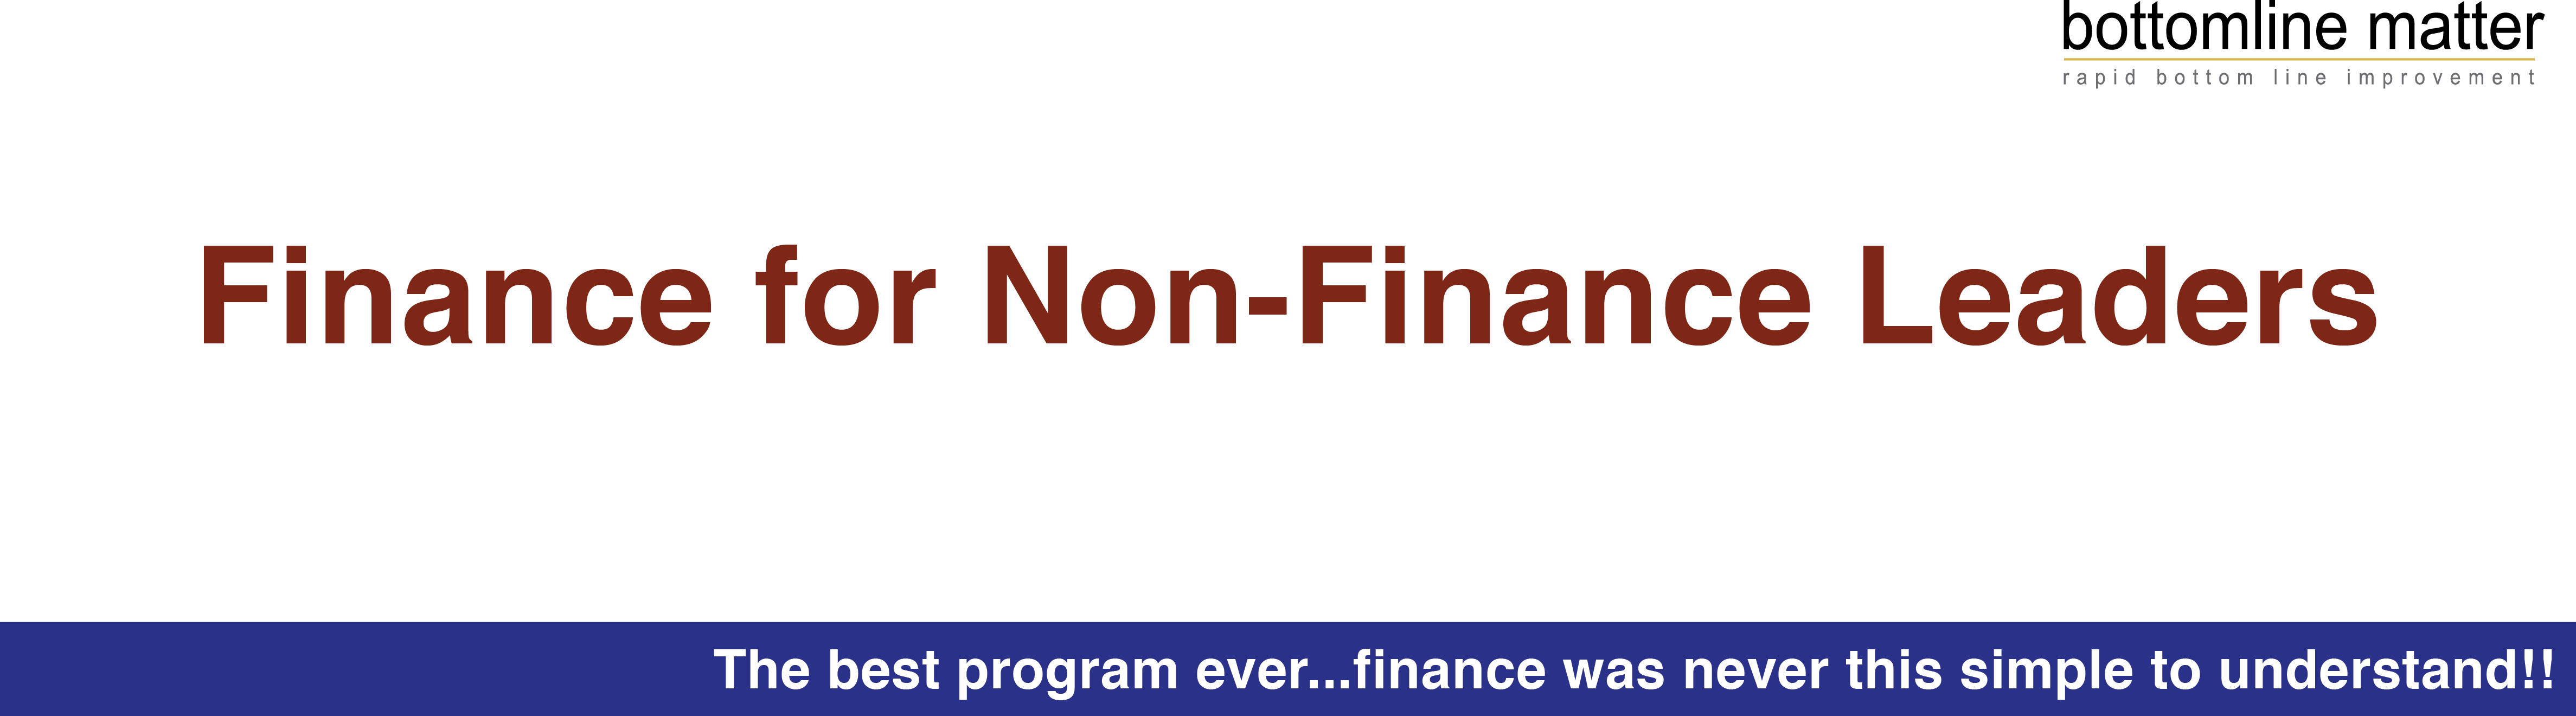 Finance For Non-Finance Leaders